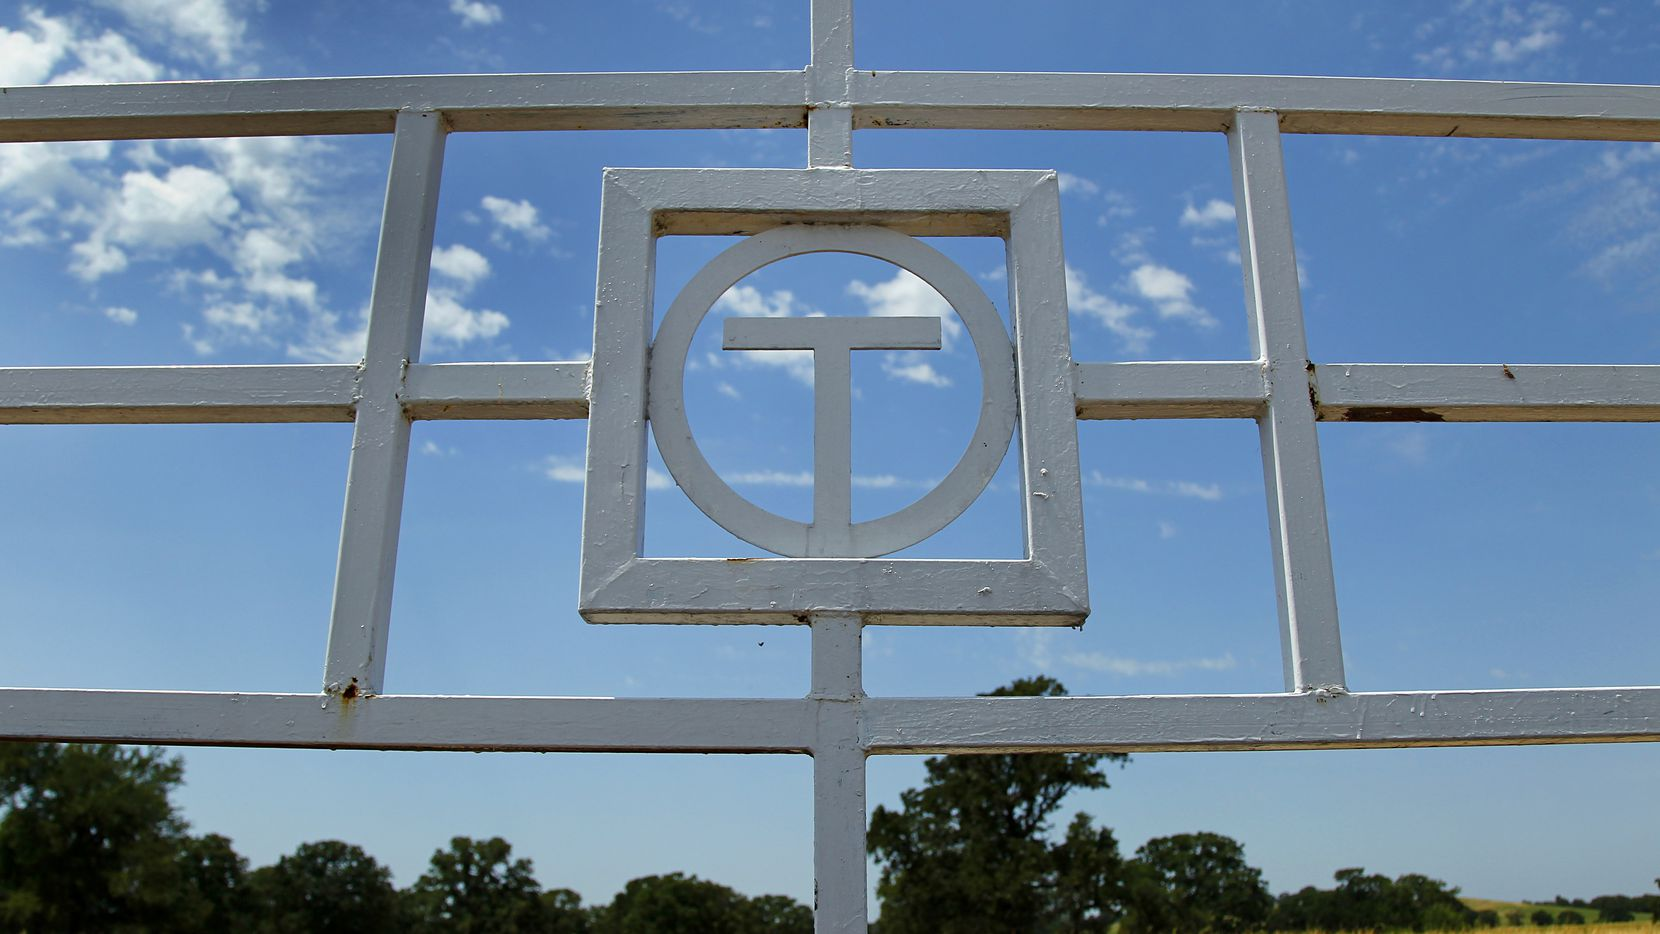 The Circle T Ranch brand is seen on a cattle gate in Westlake.